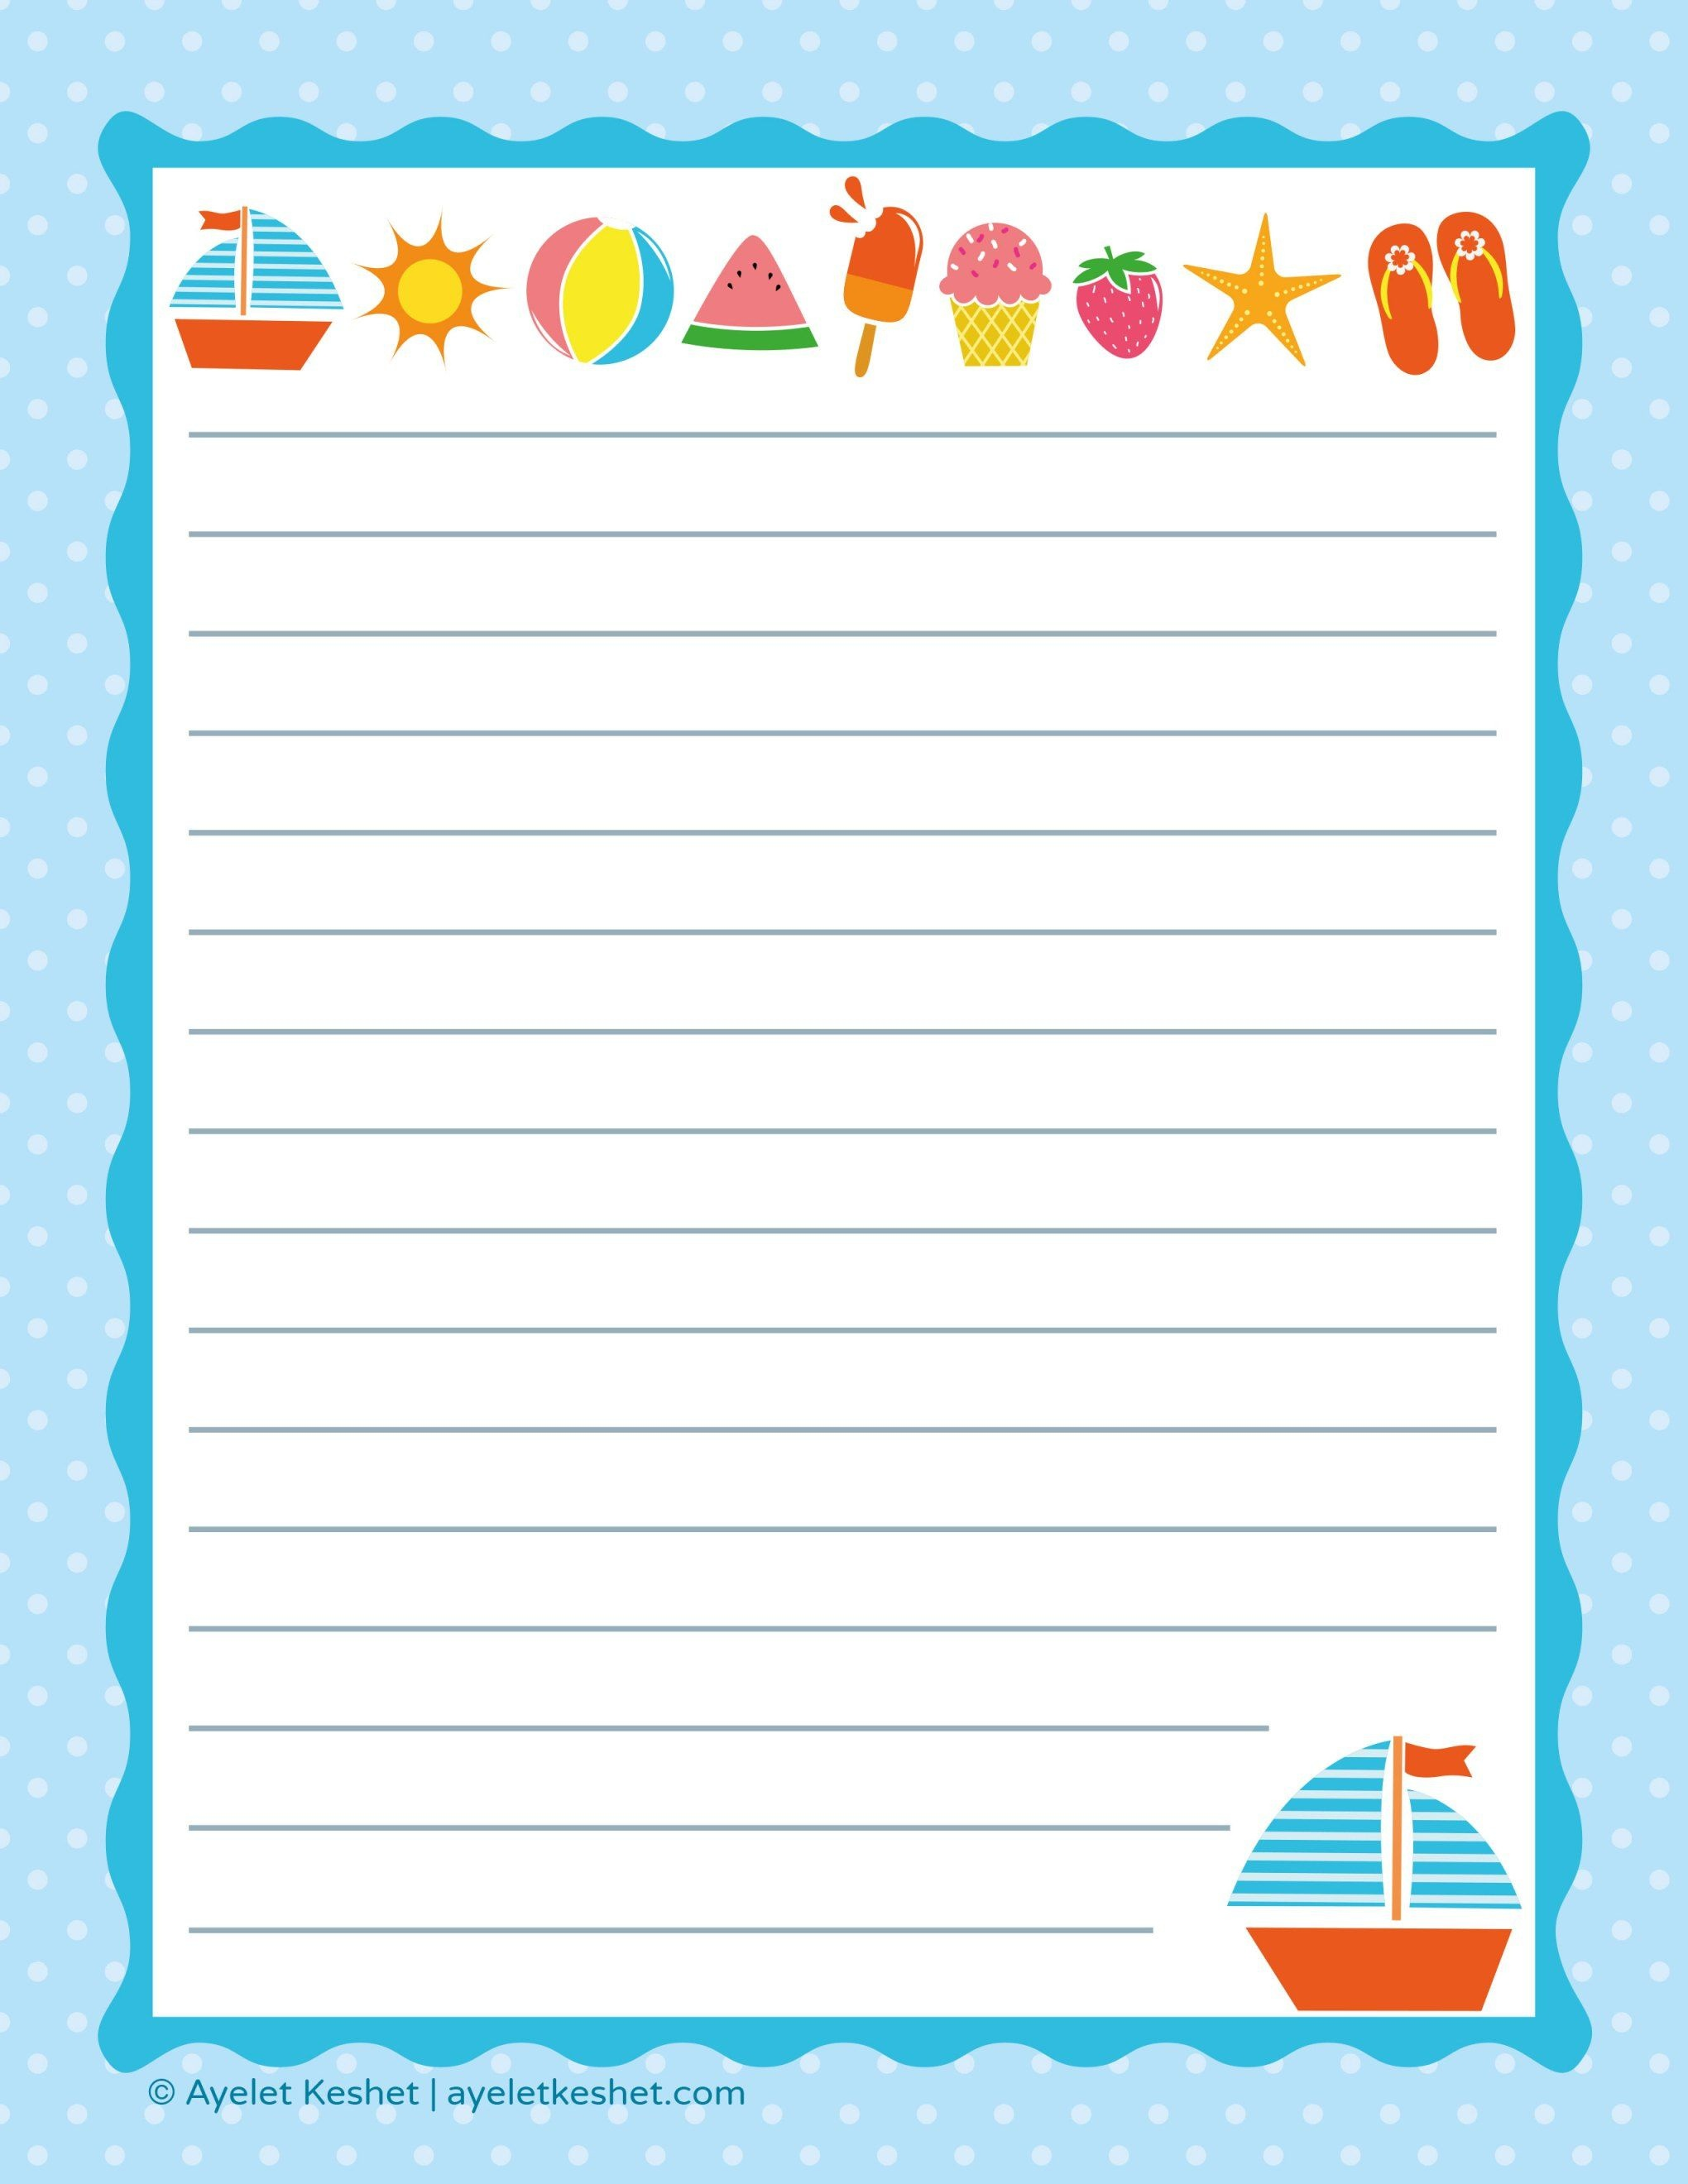 Free Printable Letter Paper | Printables To Go | Printable Letters - Free Printable Writing Paper